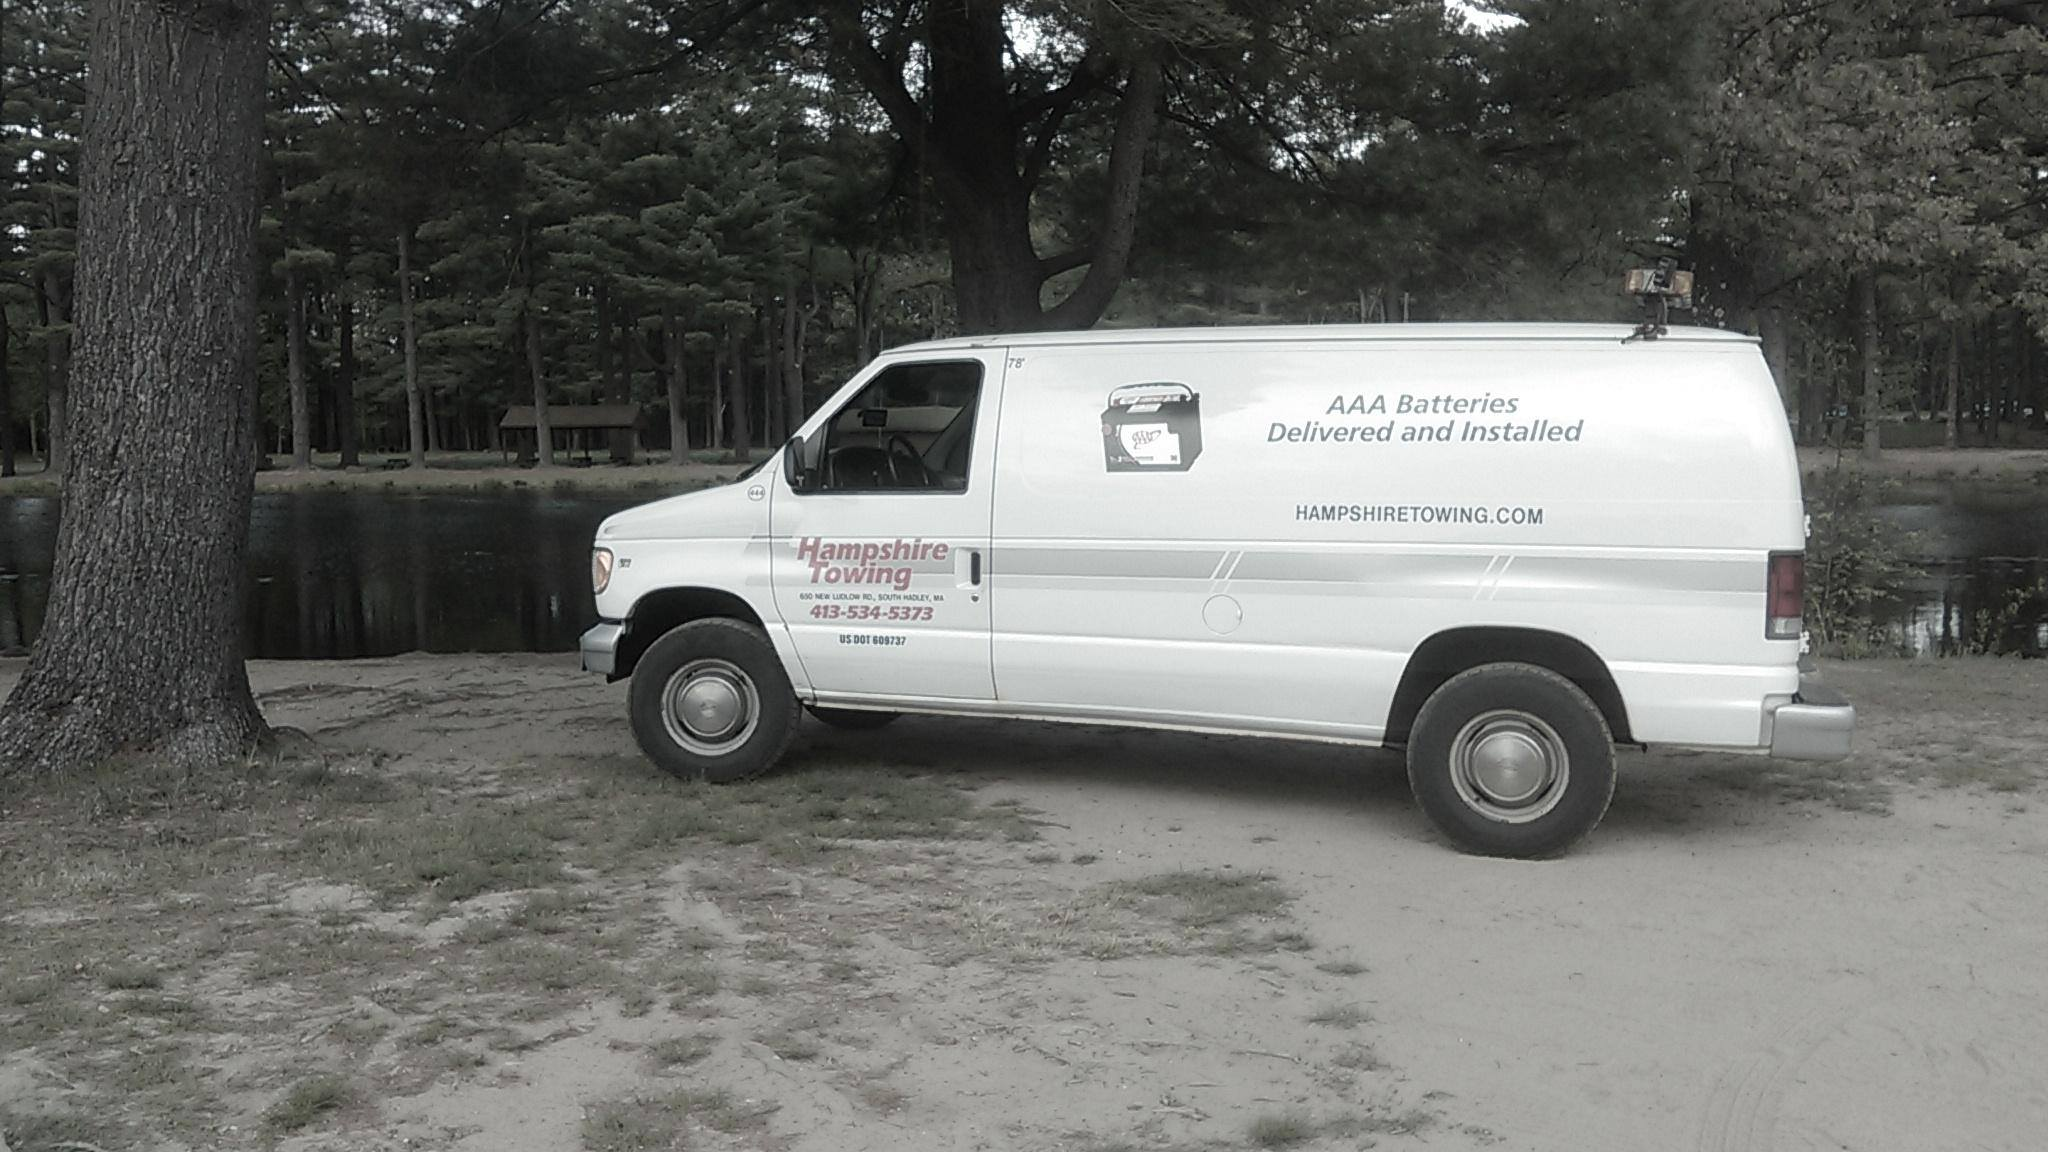 Hampshire Towing - Battery Service